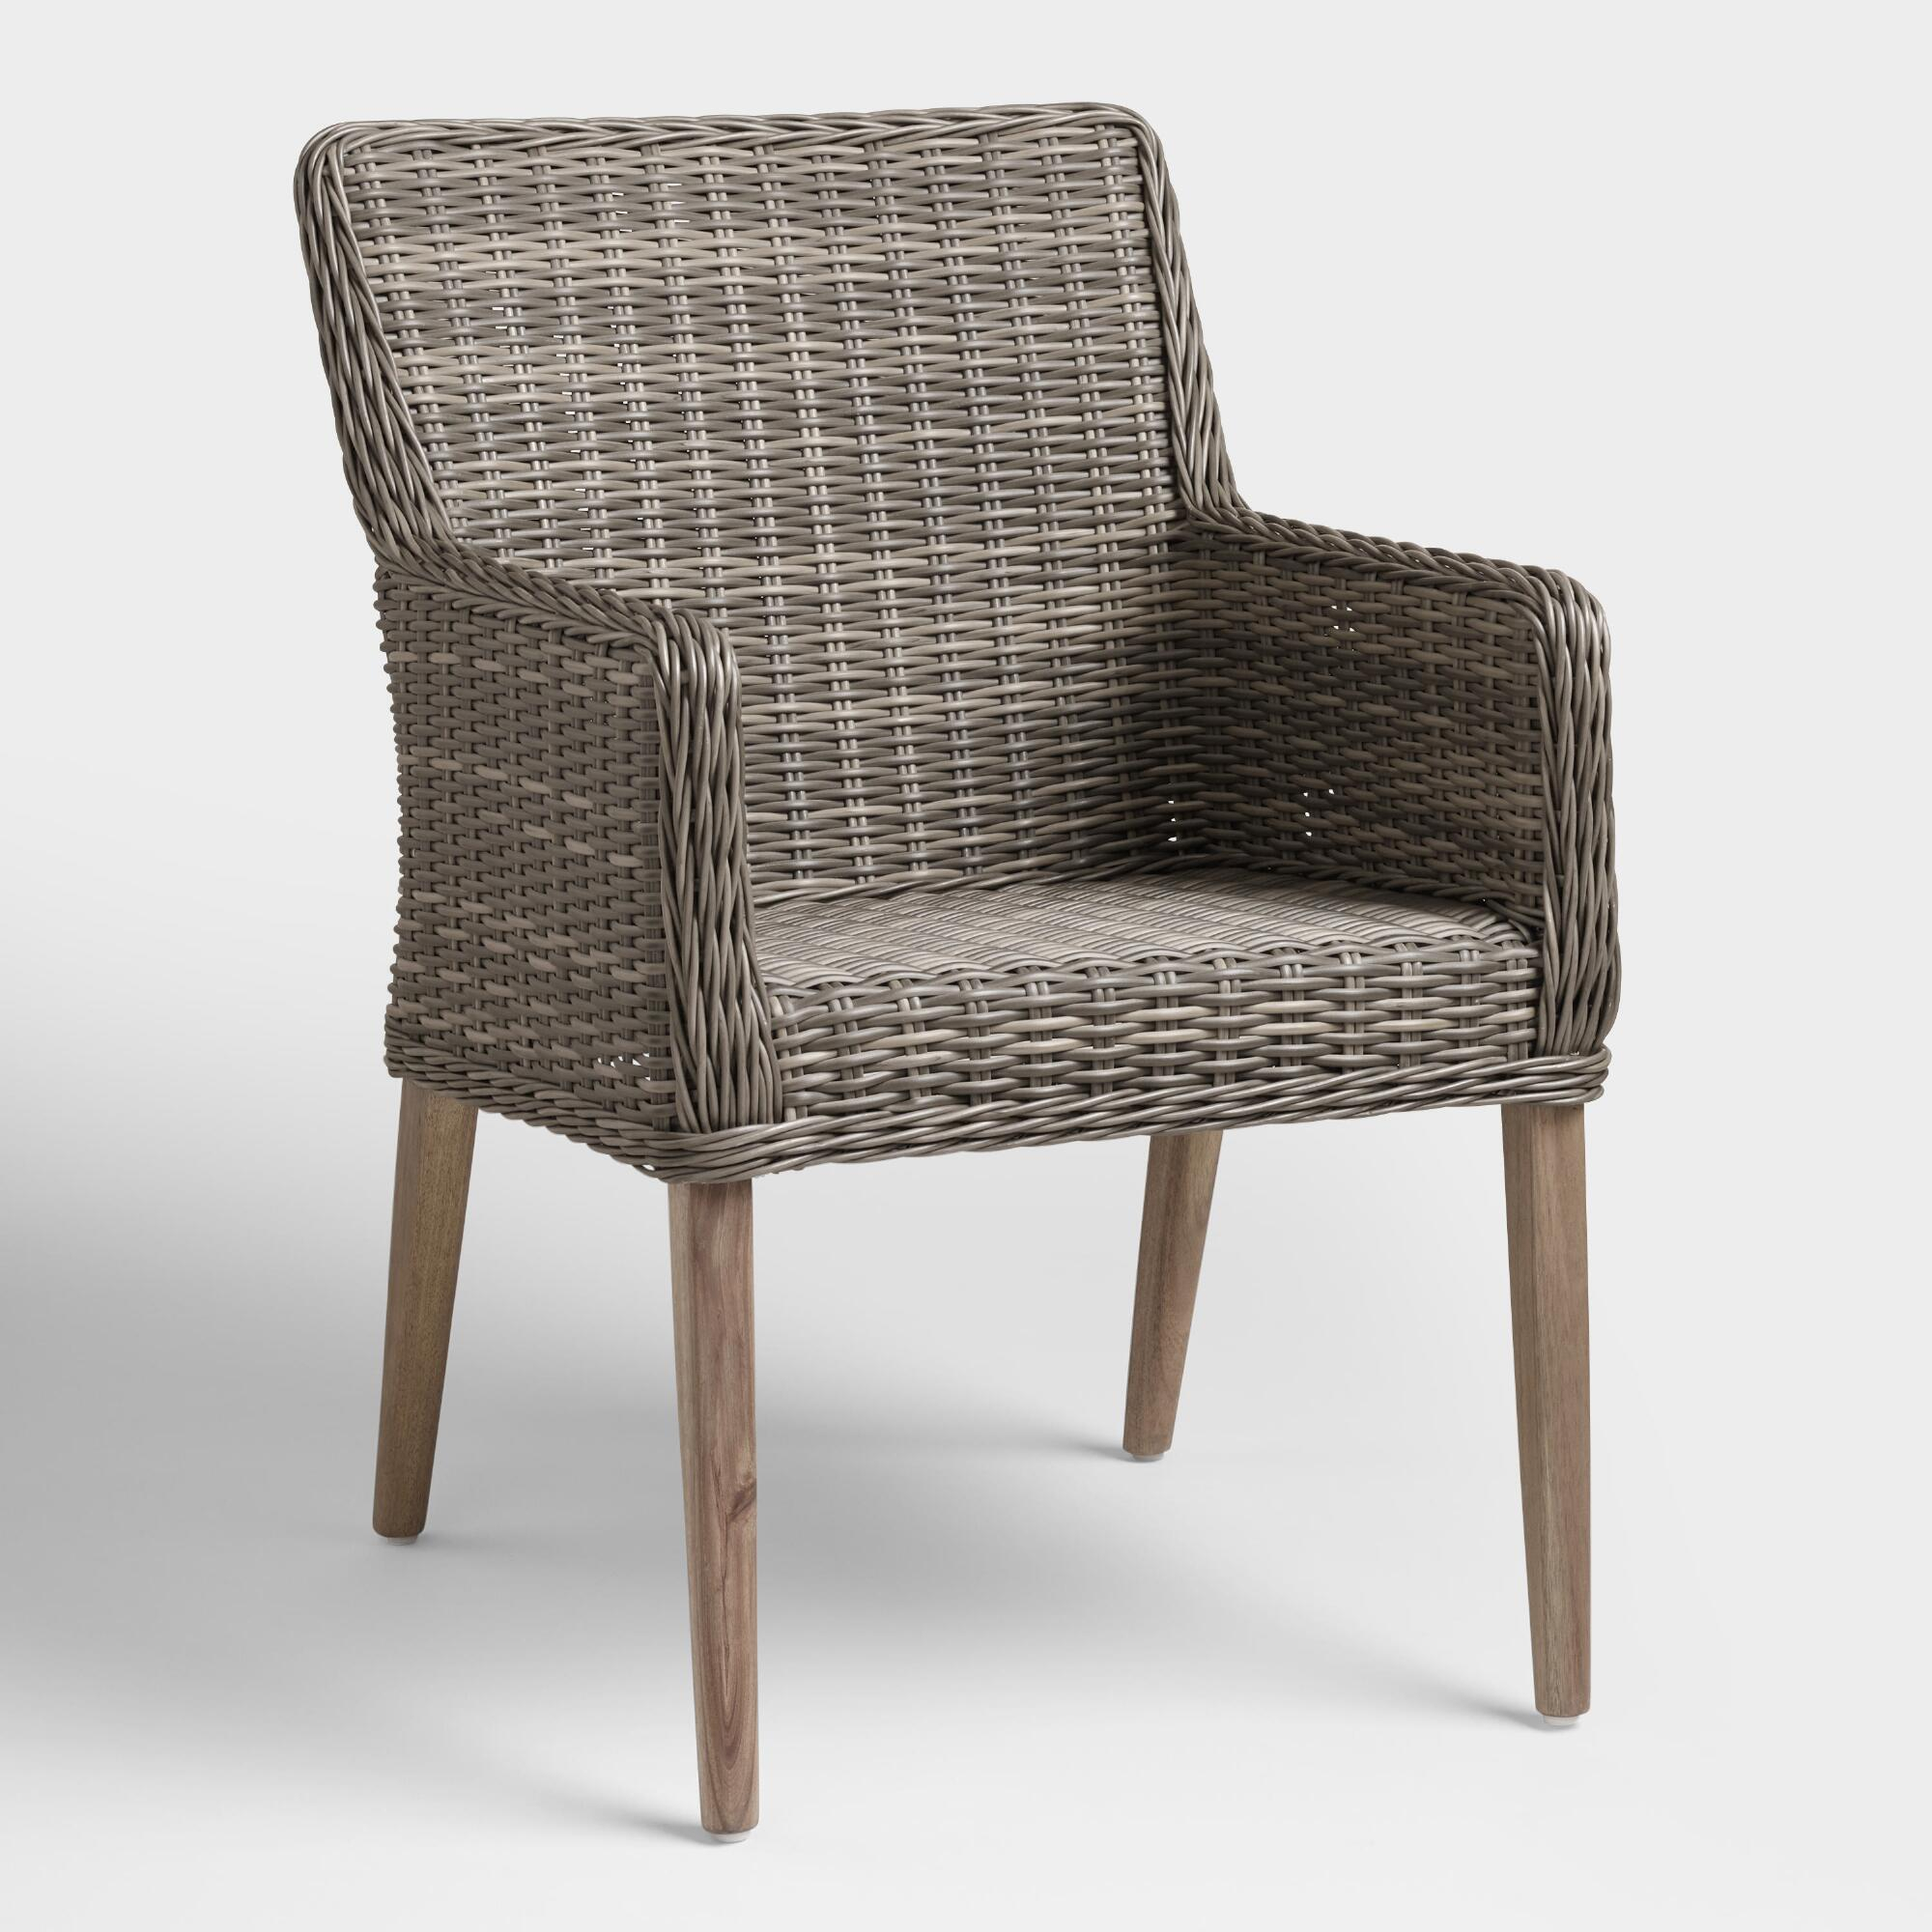 Gray All Weather Wicker Borgia Outdoor Patio Dining Chair – Resinworld Market With Regard To Daleyza Slipper Chairs (View 10 of 15)